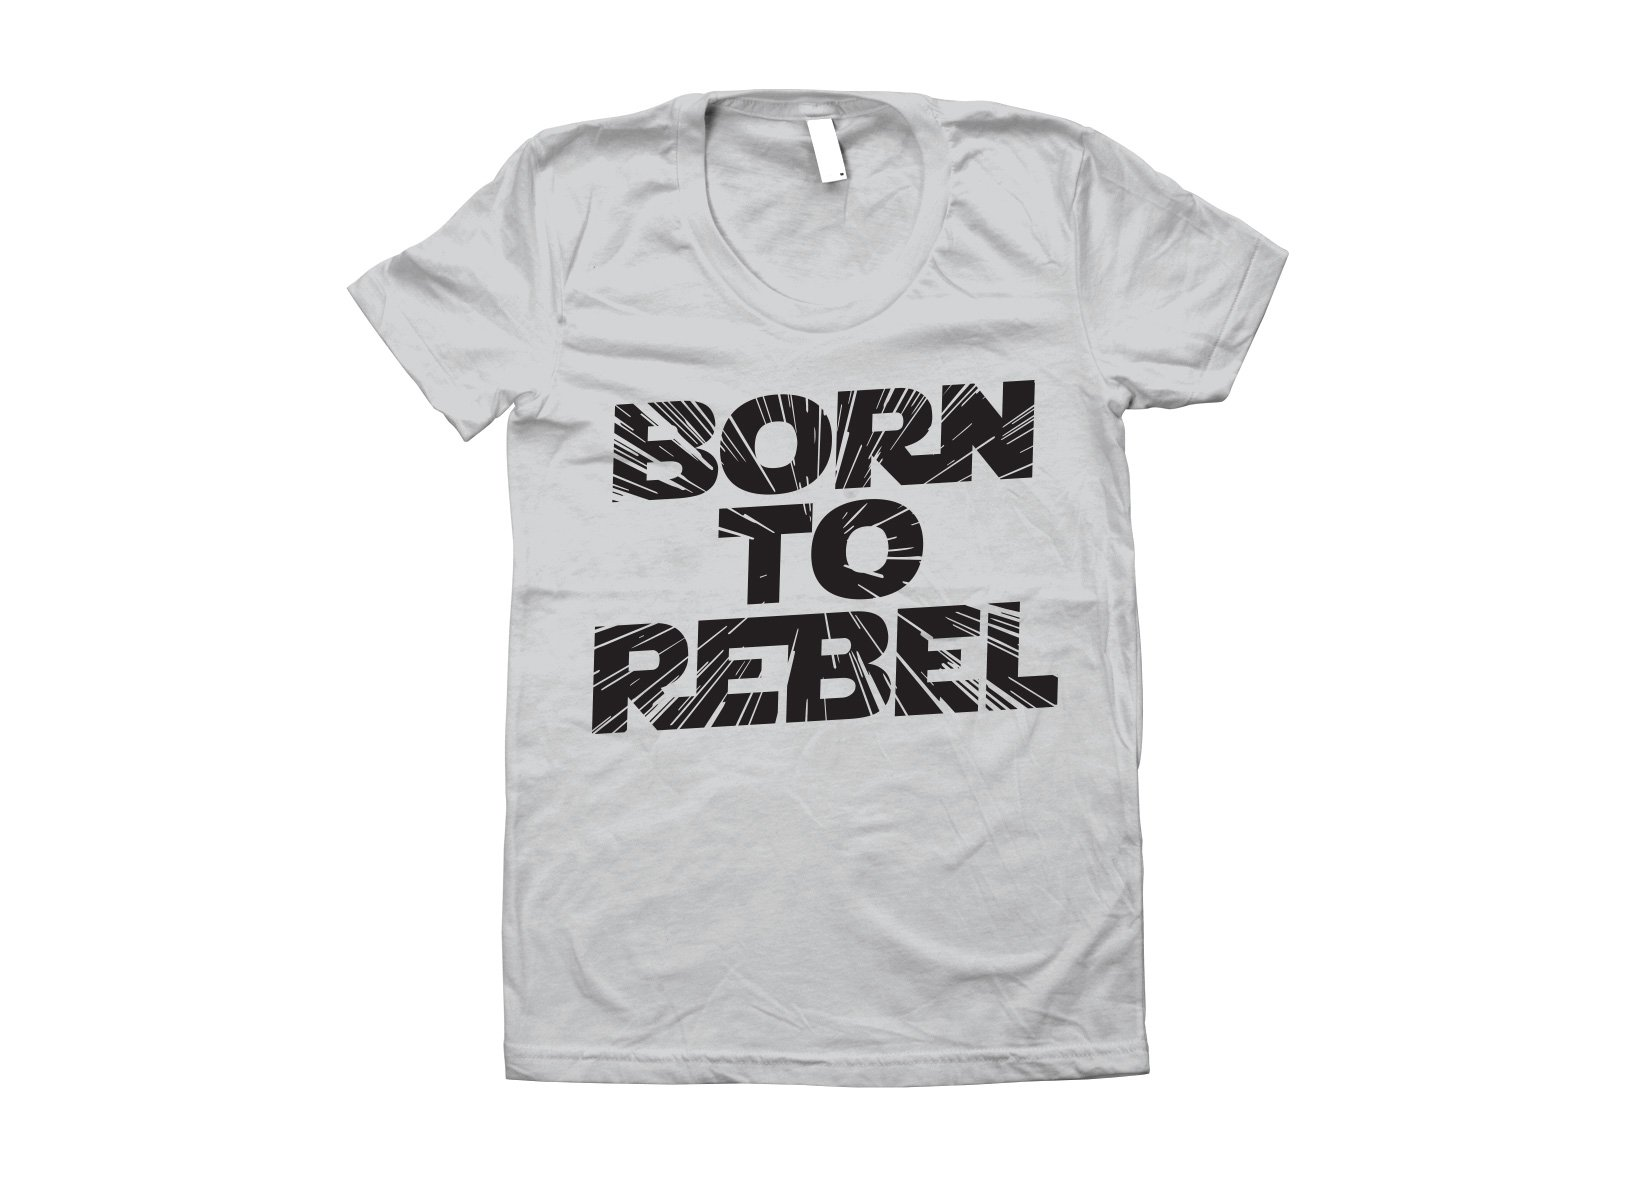 Born To Rebel on Juniors T-Shirt